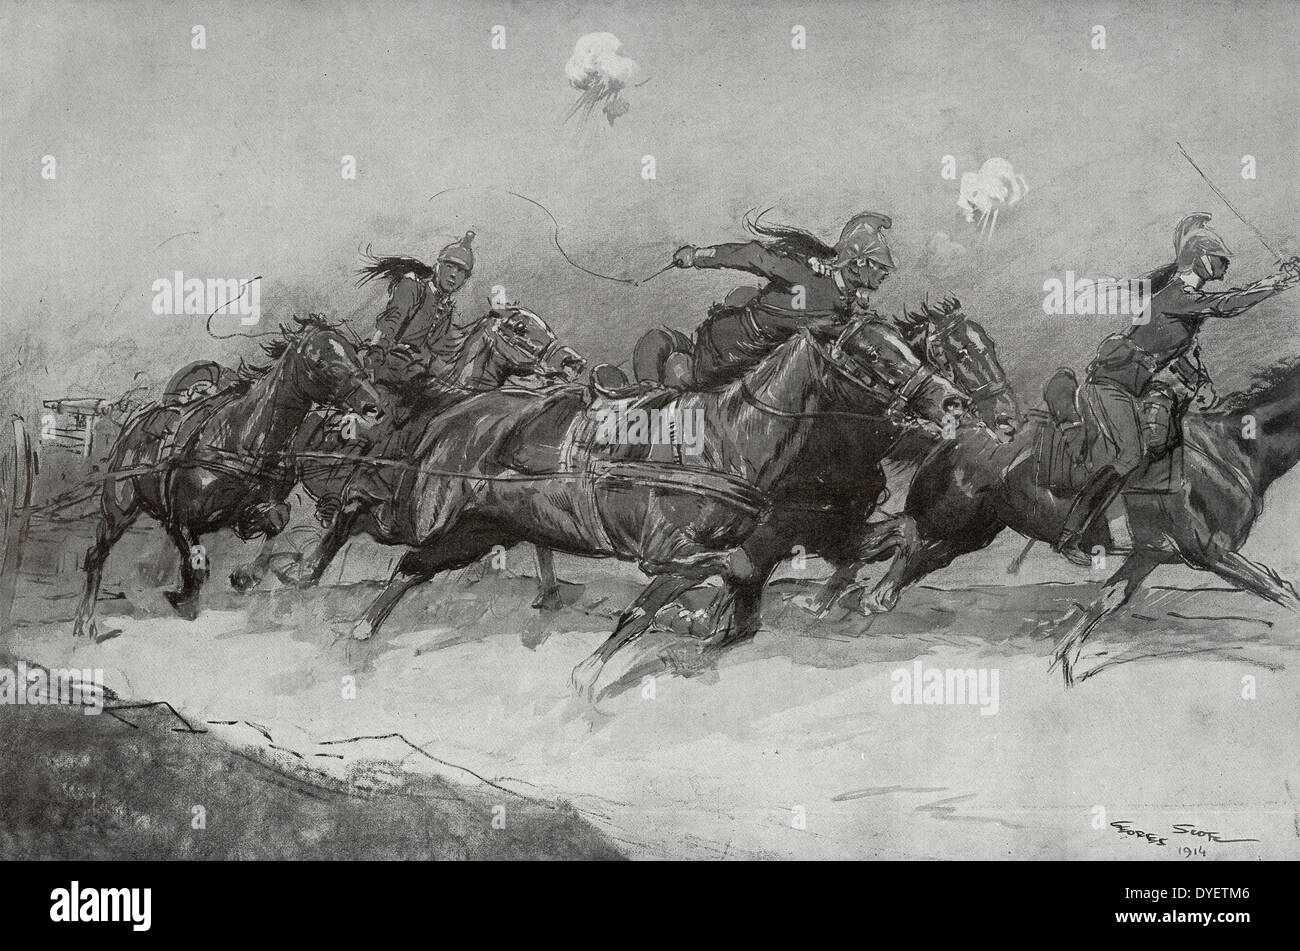 French cavalry in action; World War One 19140101 - Stock Image